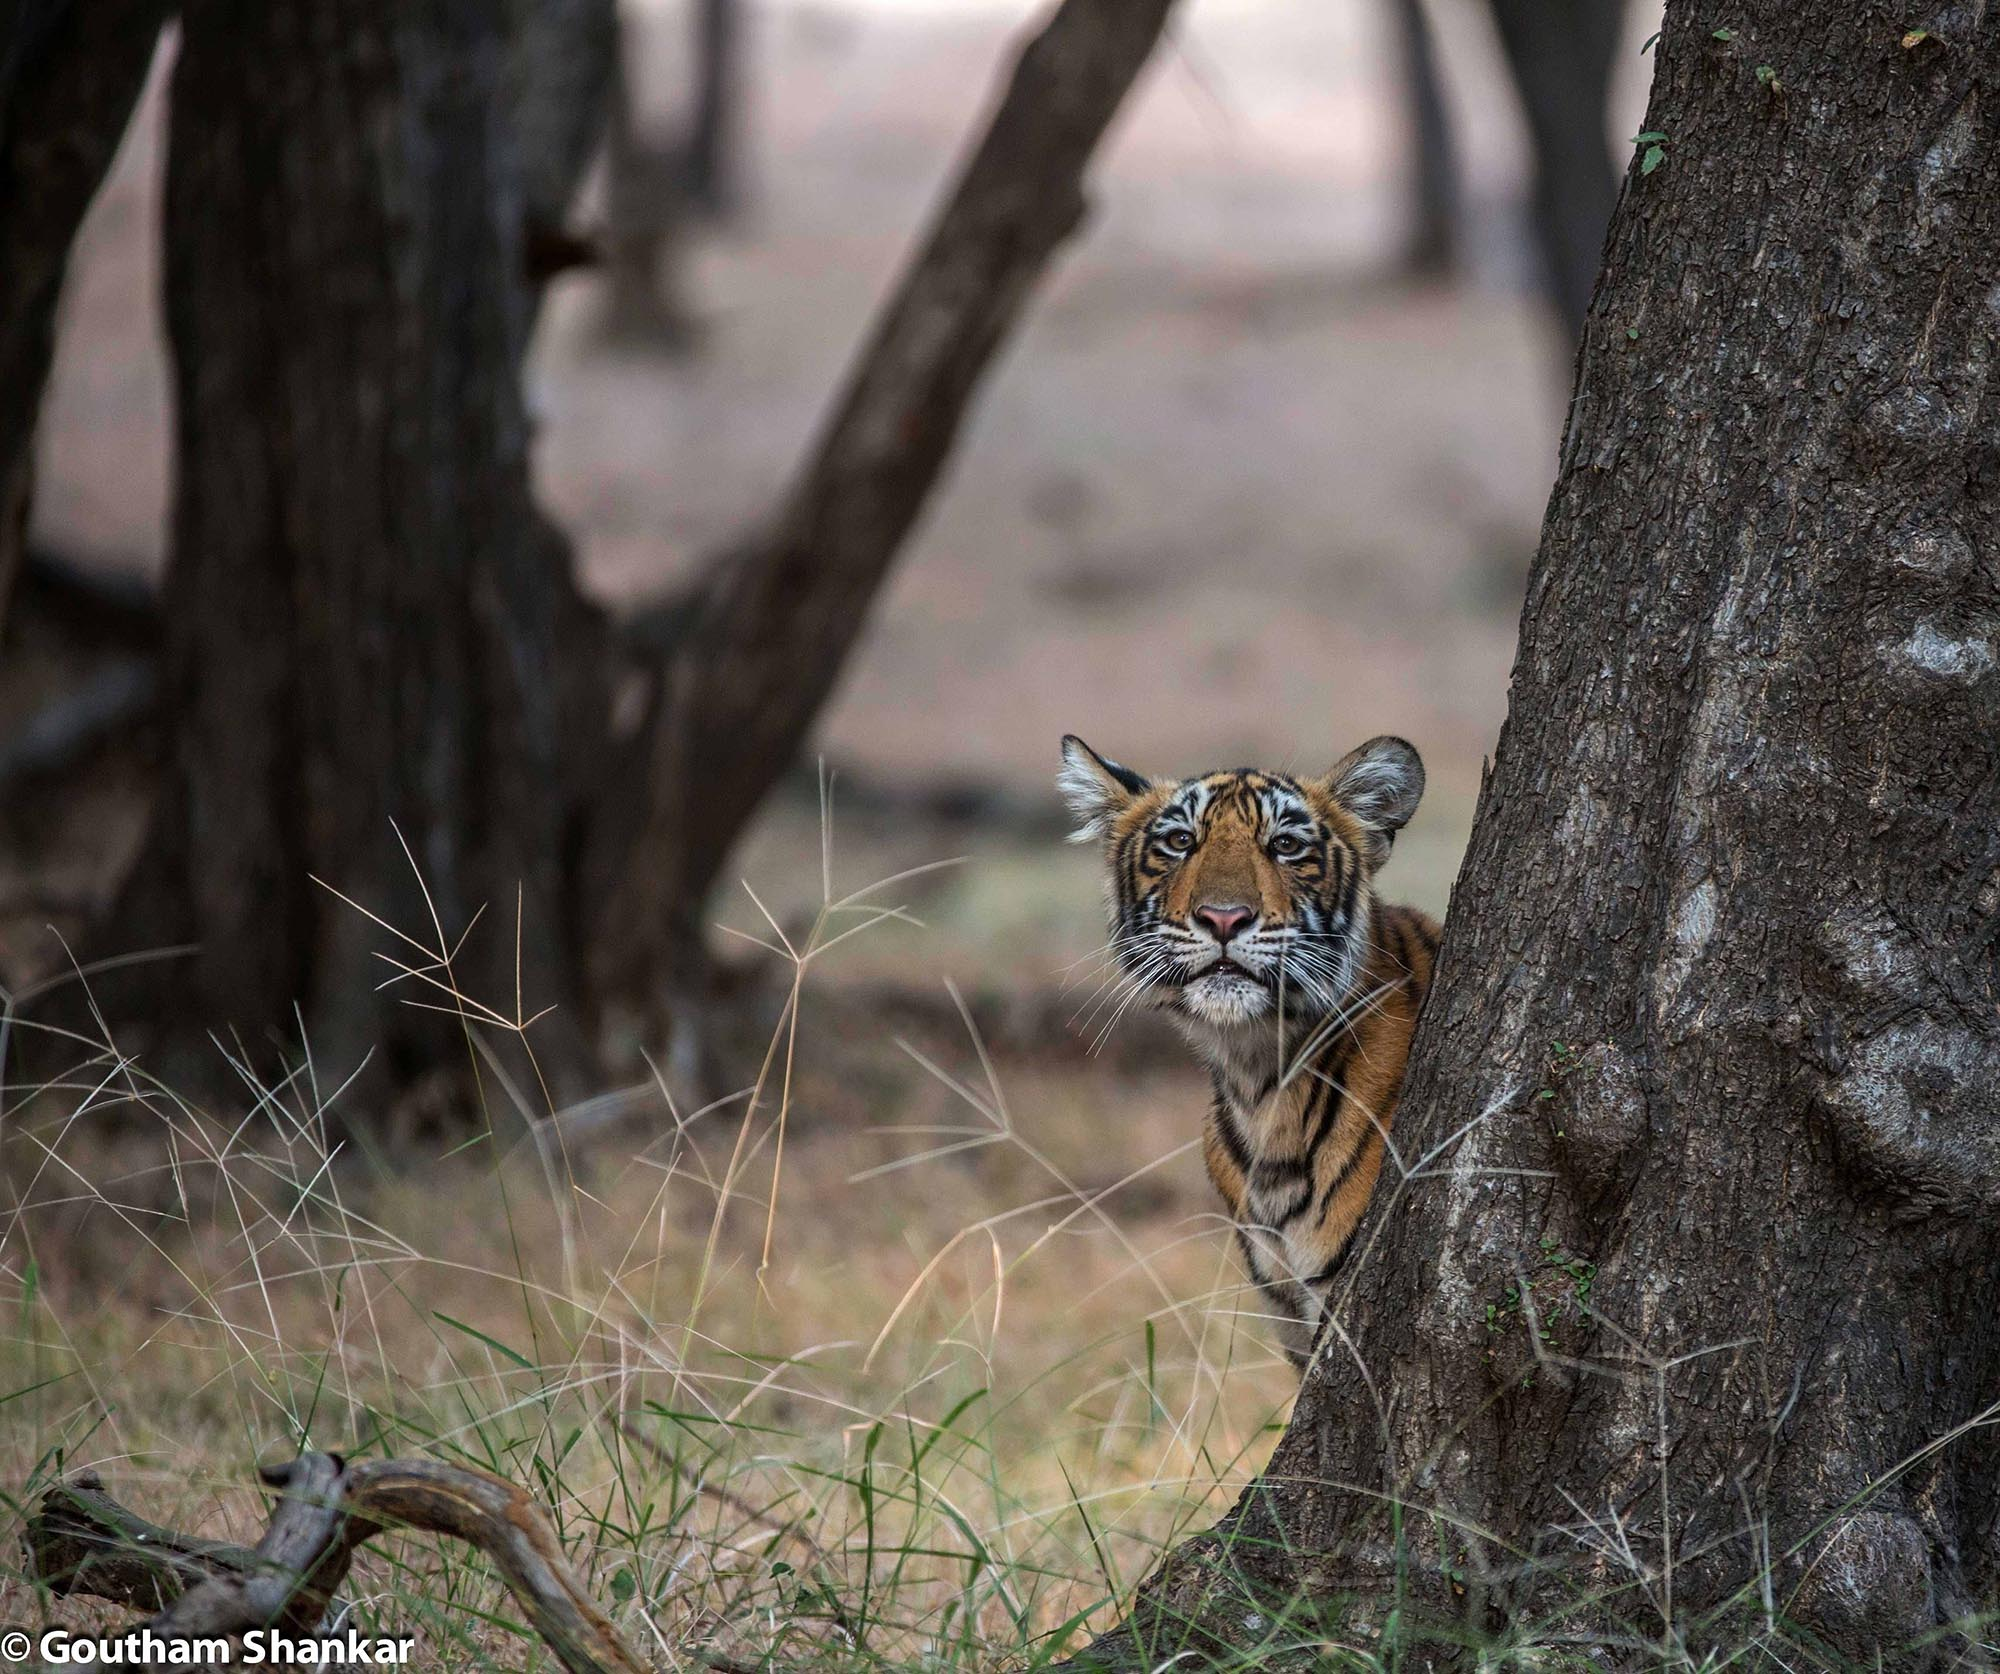 T19 cub from Ranthambore, Rajasthan